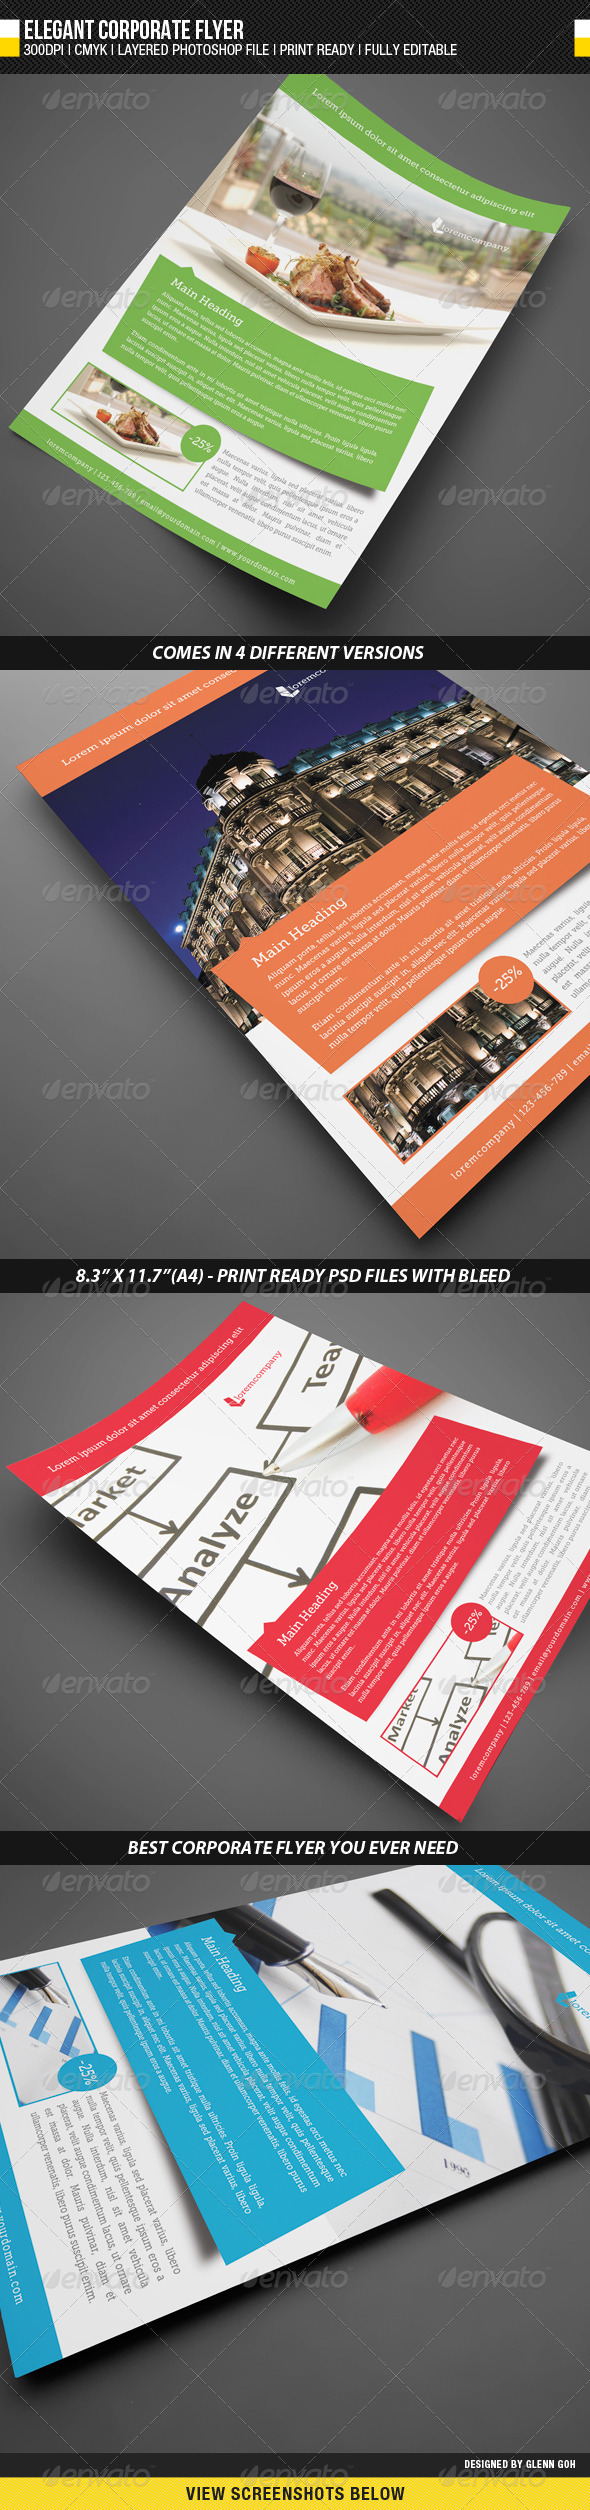 Elegant Corporate Flyer - Corporate Flyers